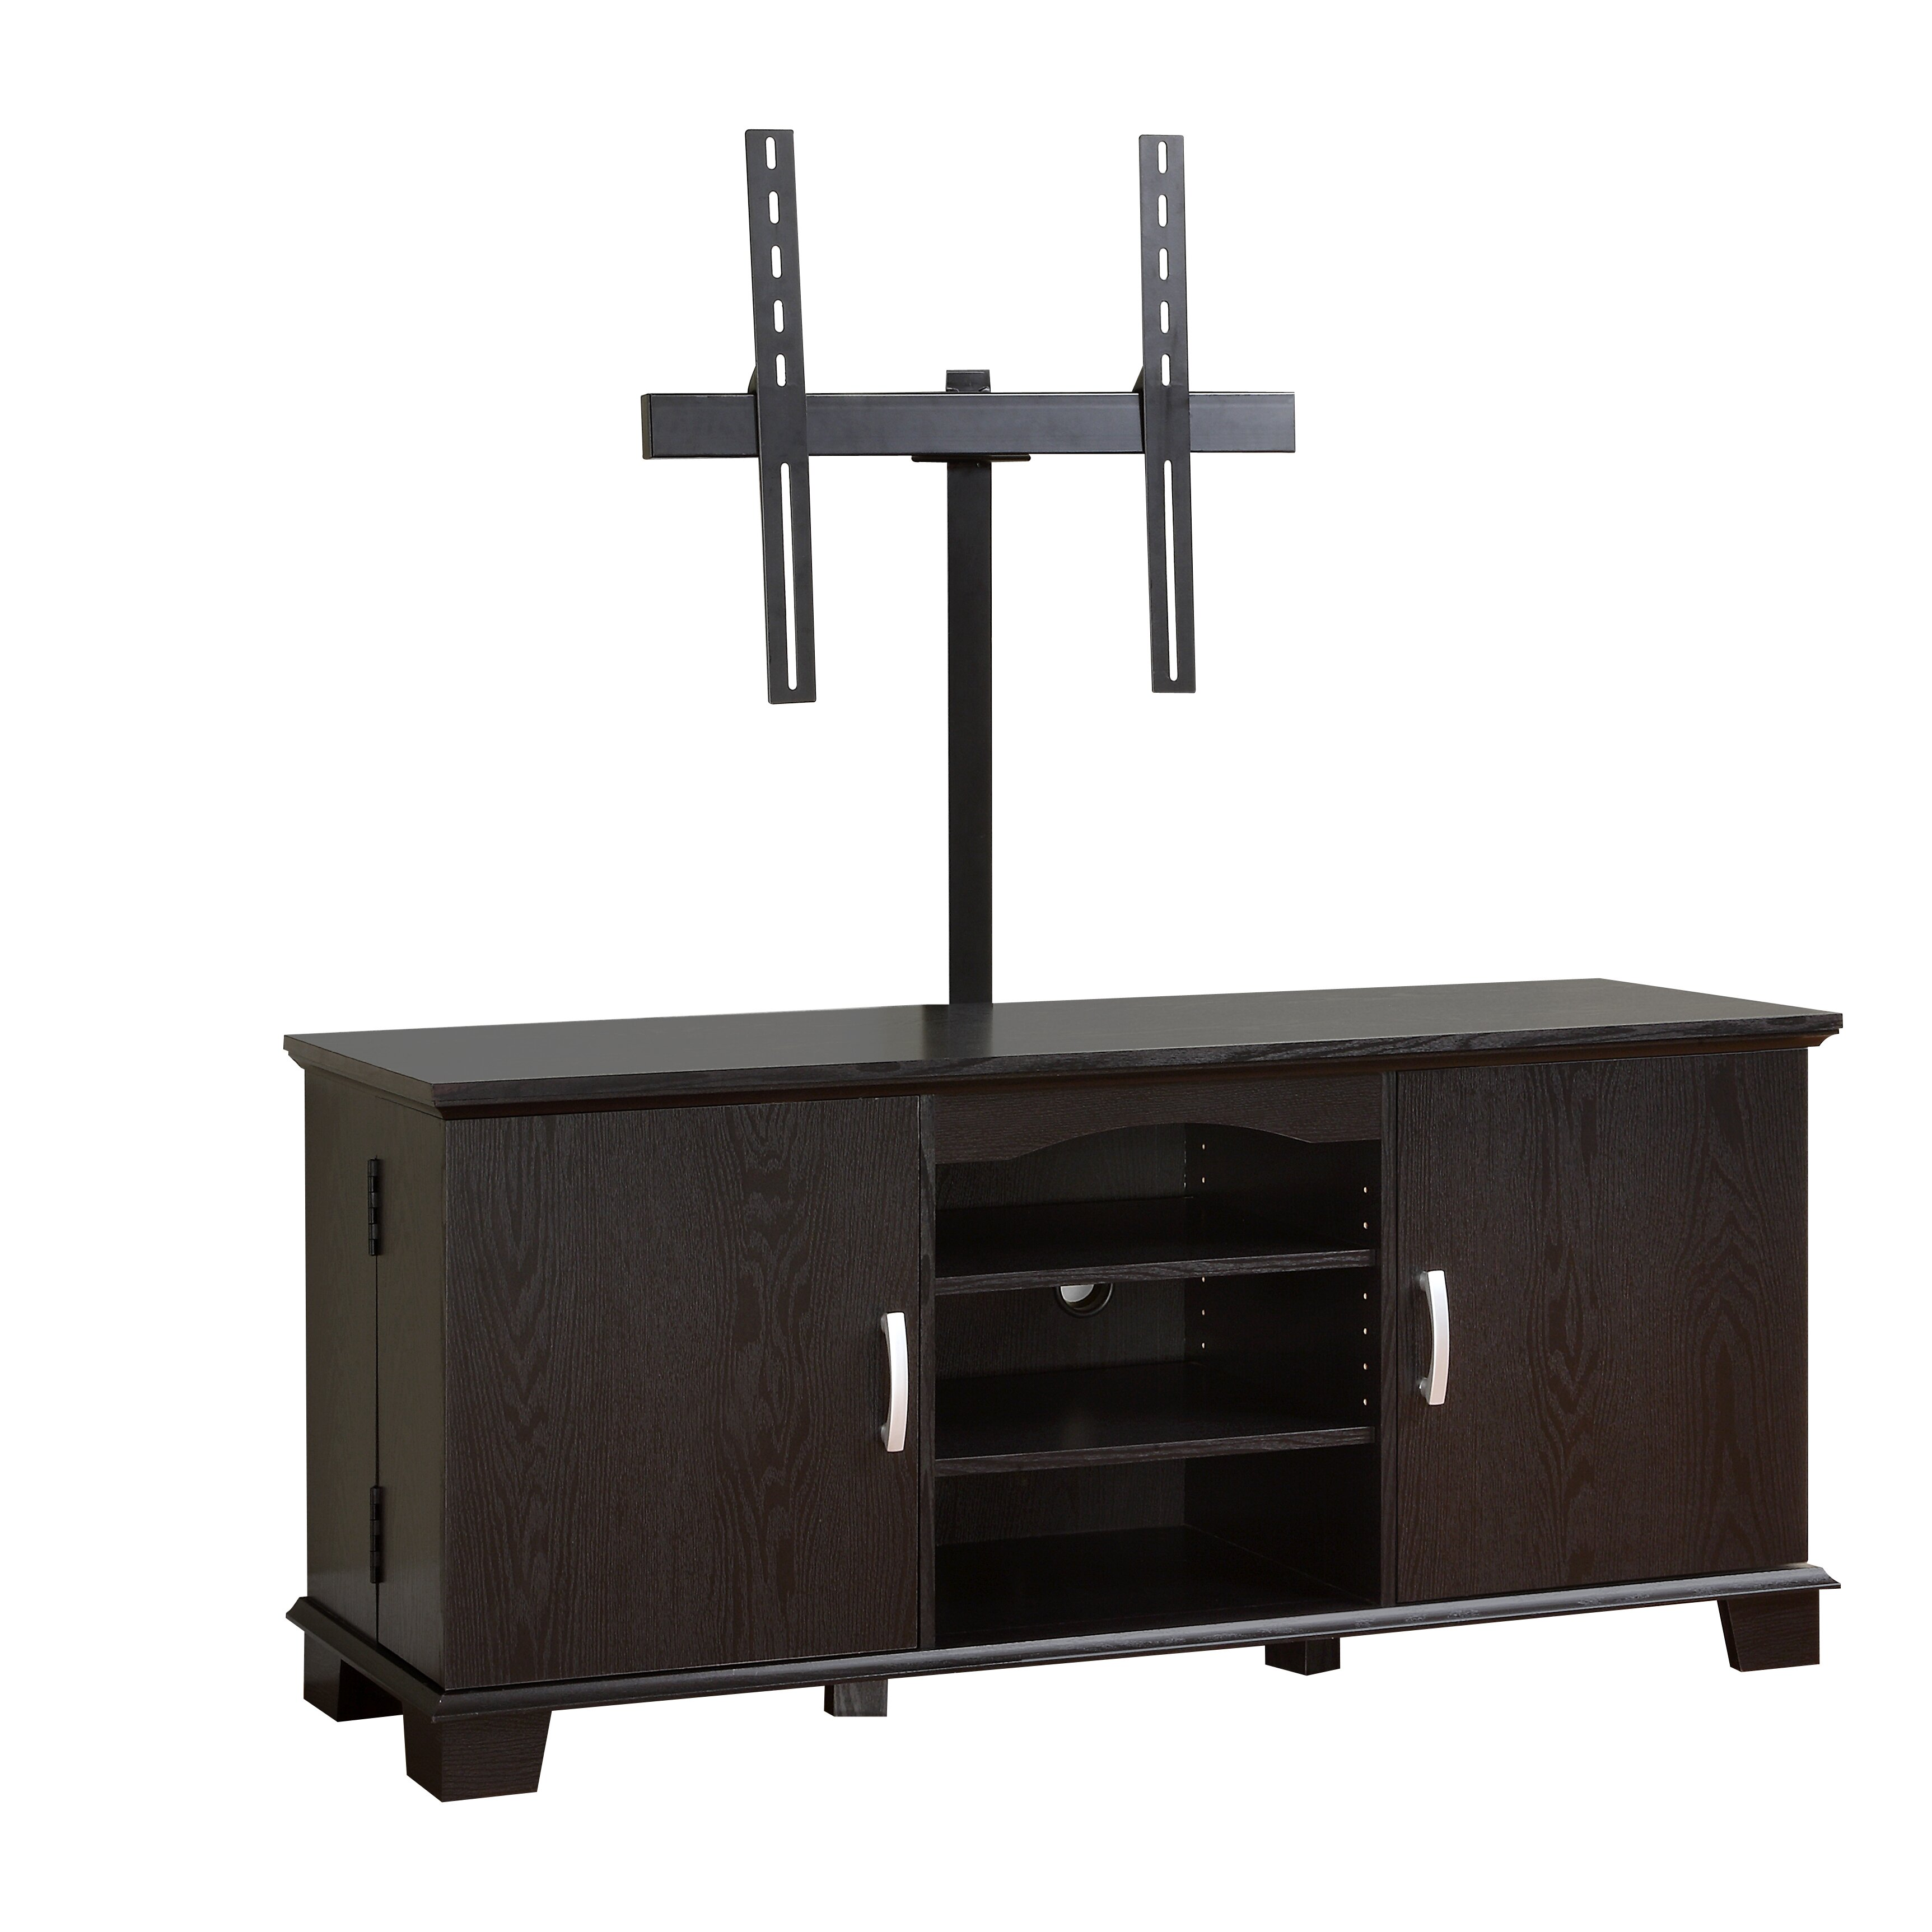 Darby Home Co Behrendt Tv Stand With Mount Reviews Wayfair